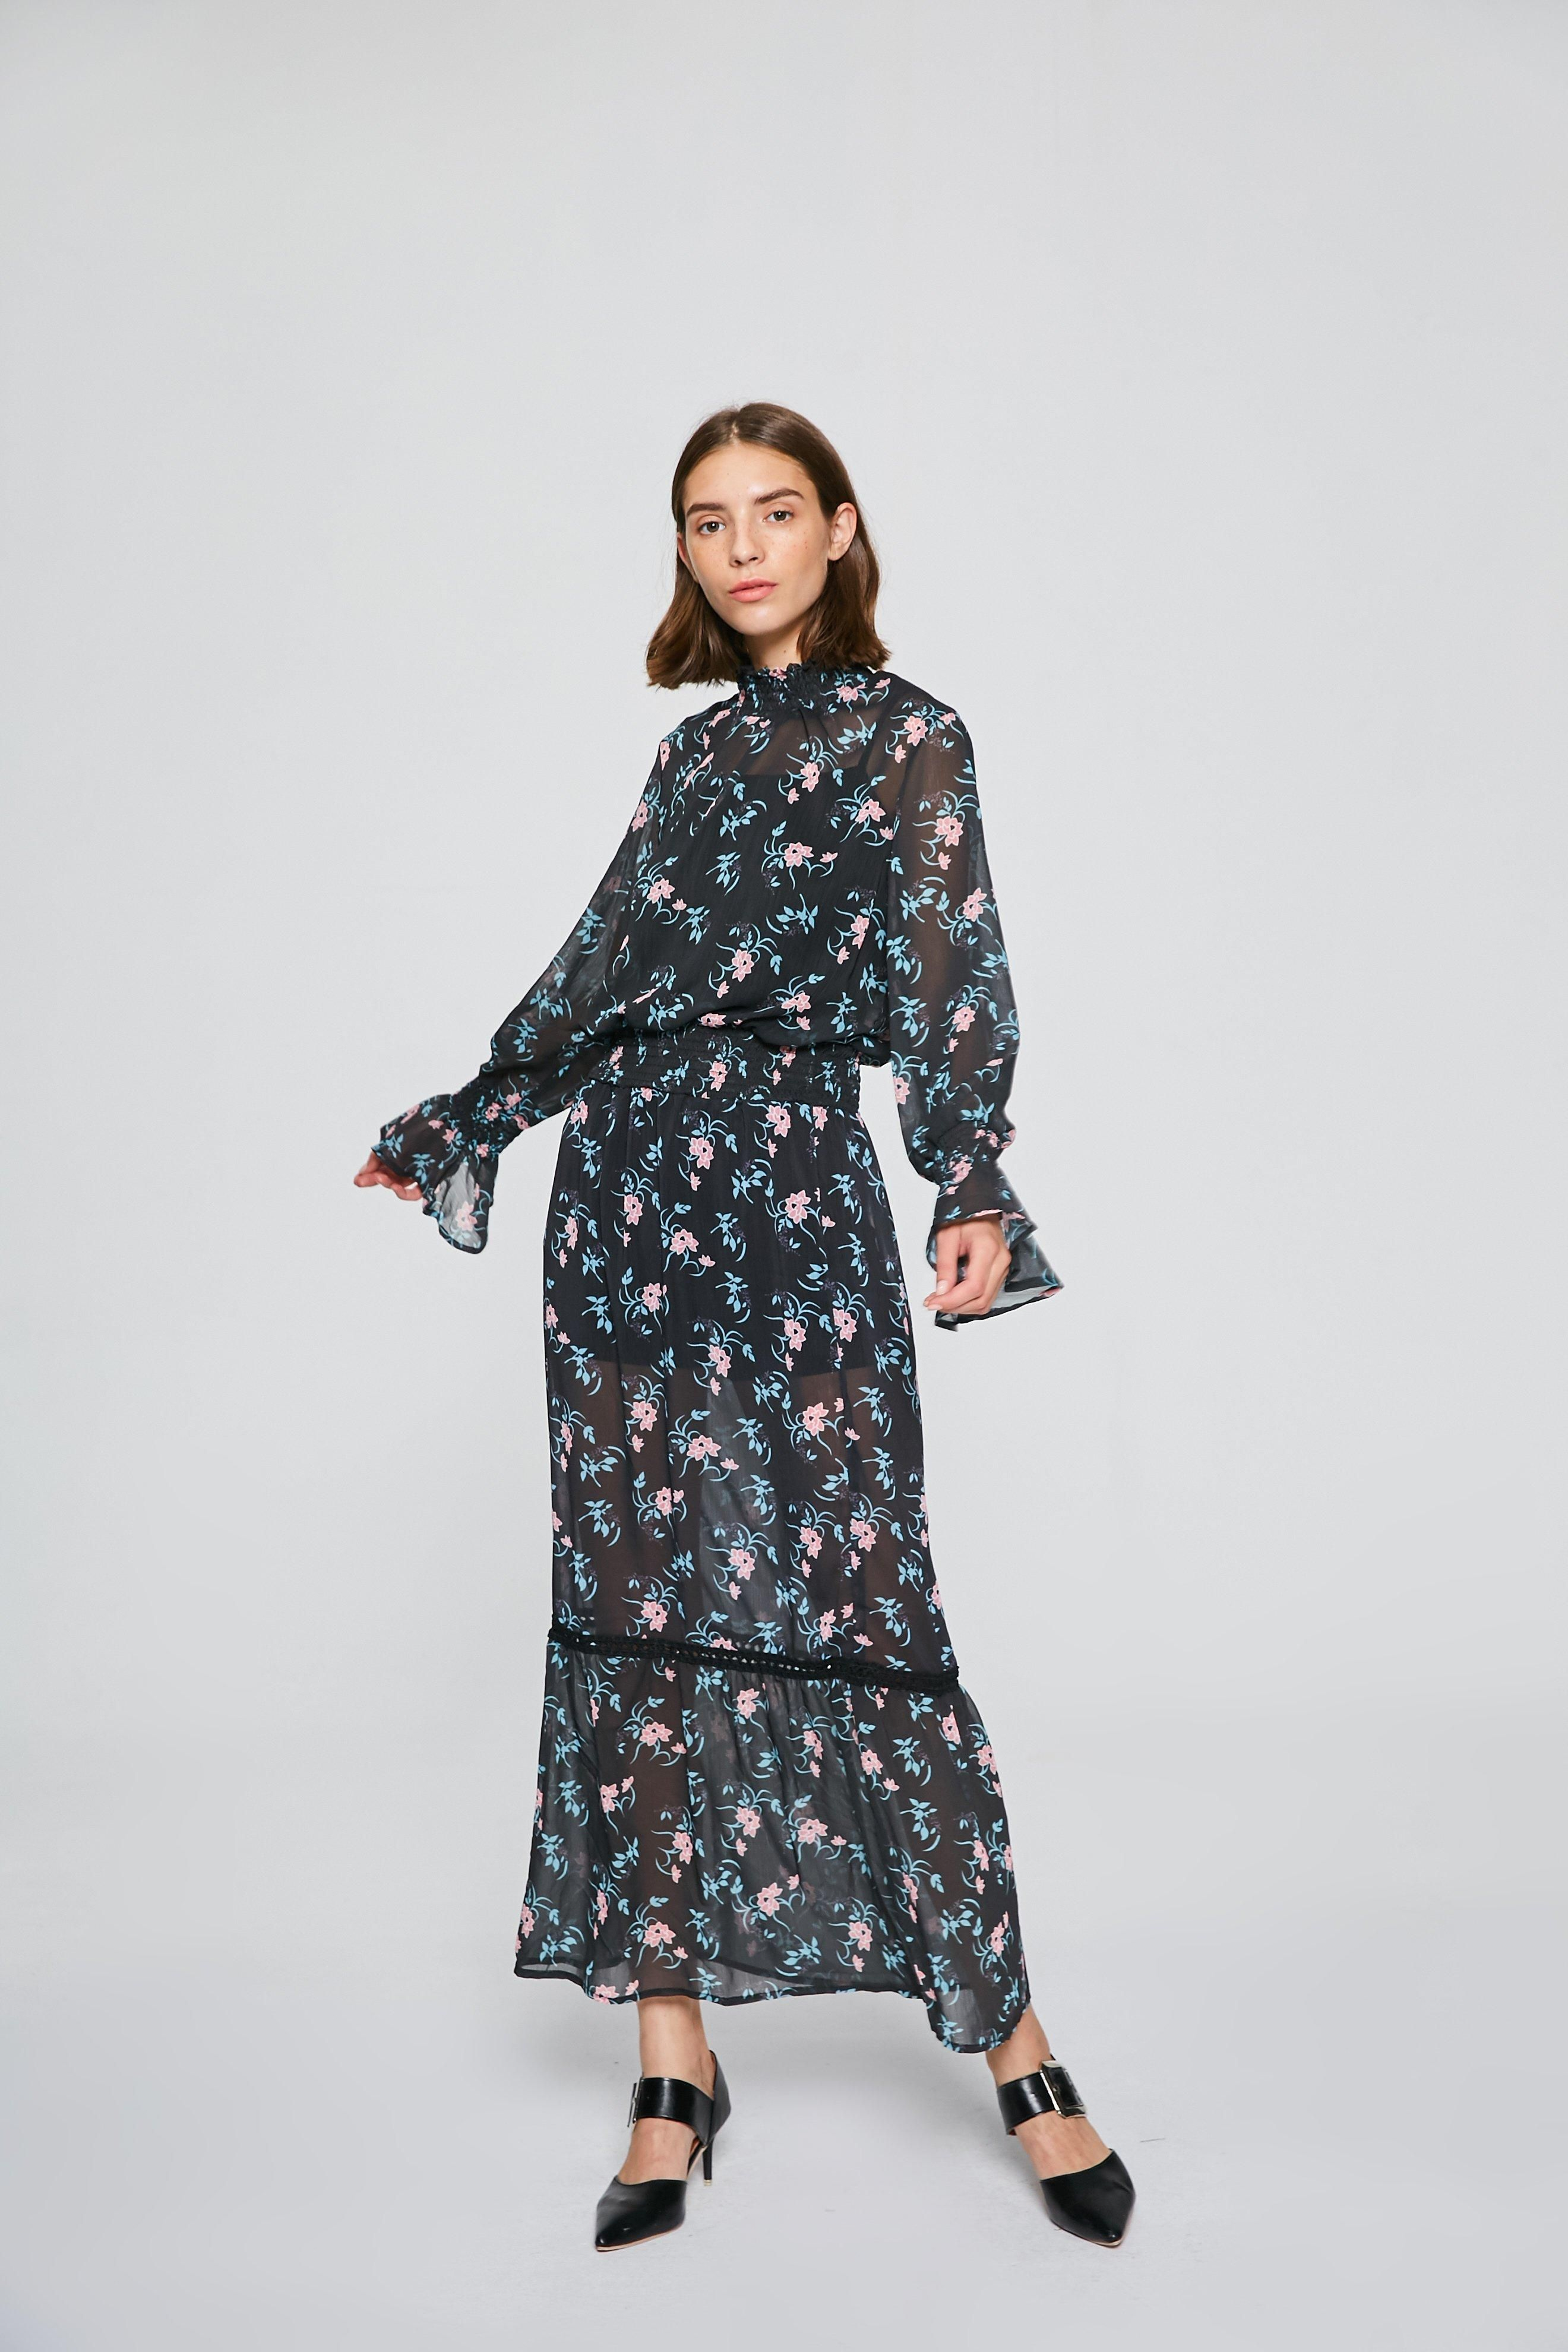 Long sleeve floral maxi dress mdr floral maxi dress floral